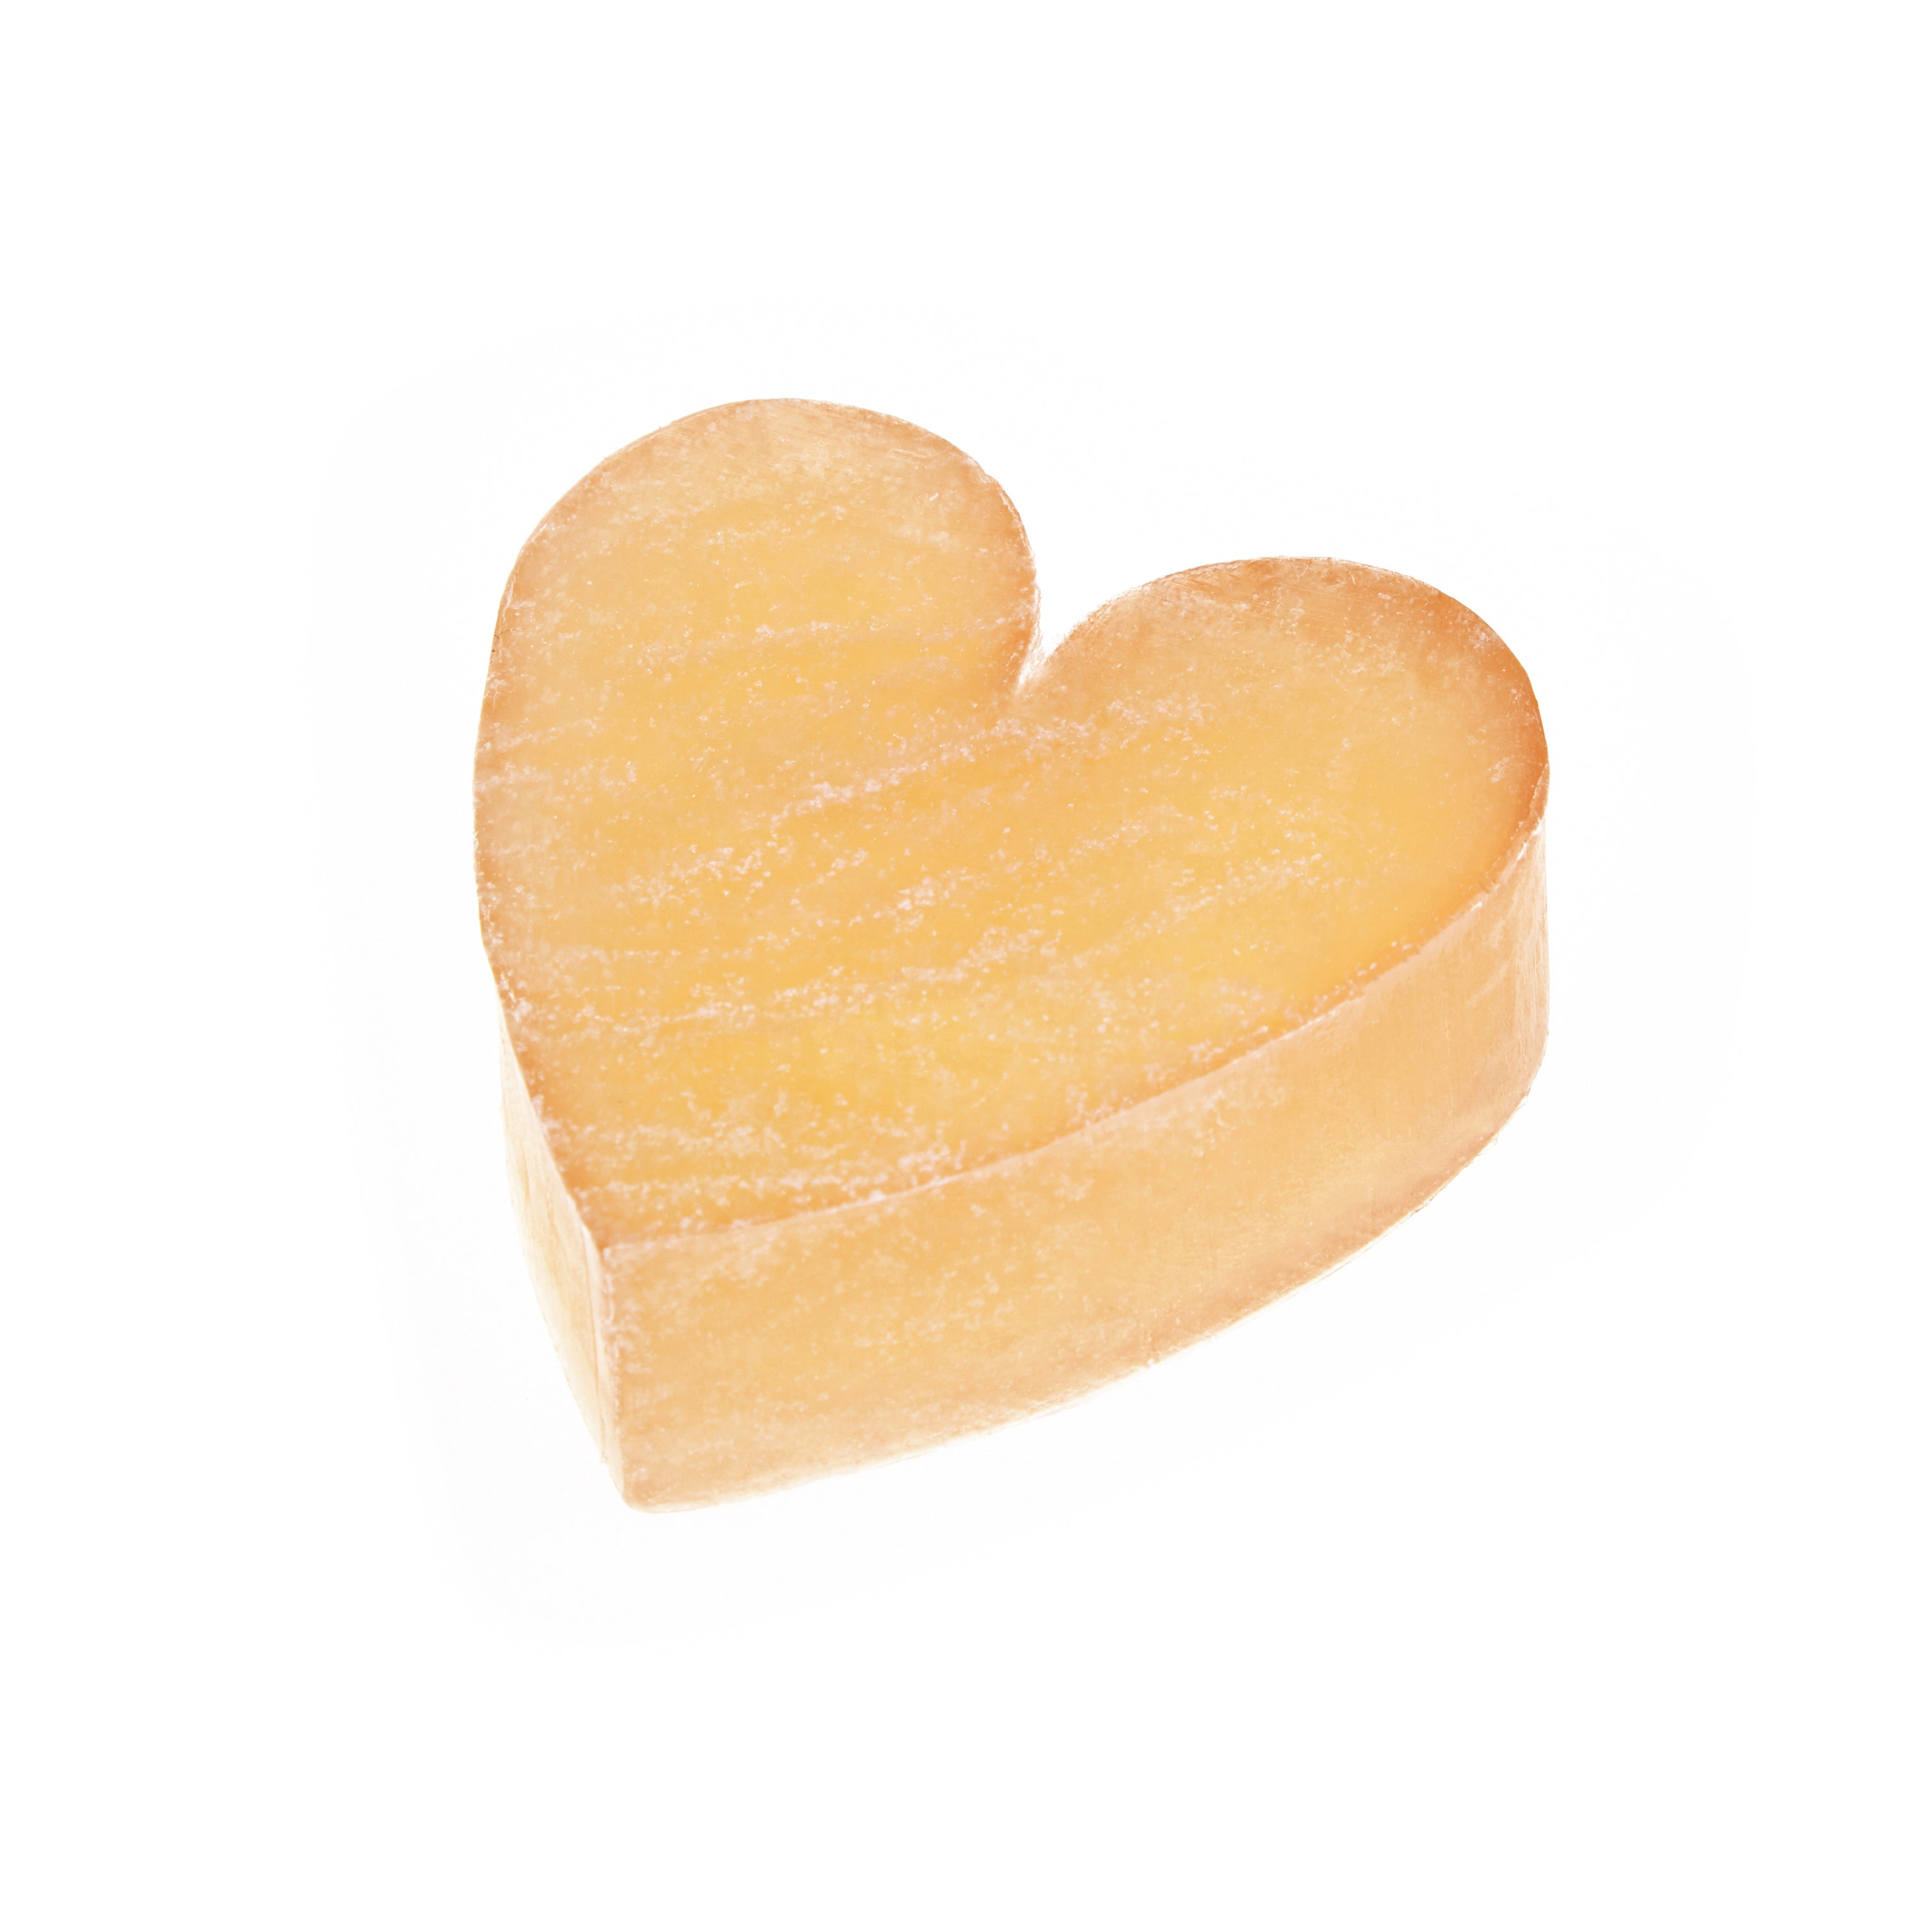 Paw Naturel Rub & Scrub Cleansing Heart shaped Bar with real sugar - Paw Naturel